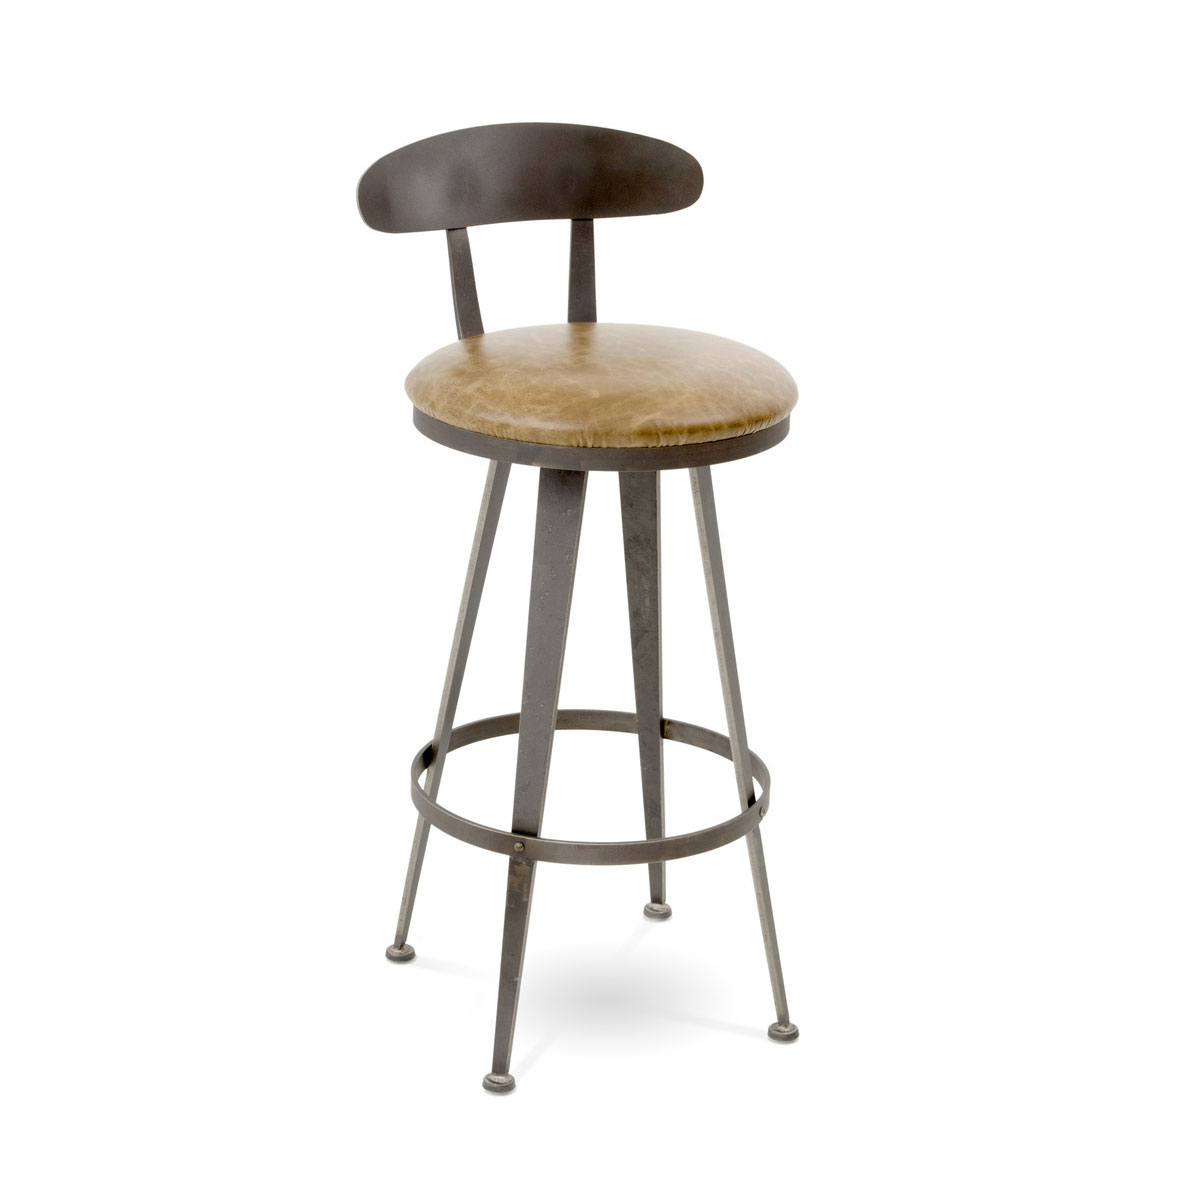 Charleston Forge Aries Swivel Barstool with Back